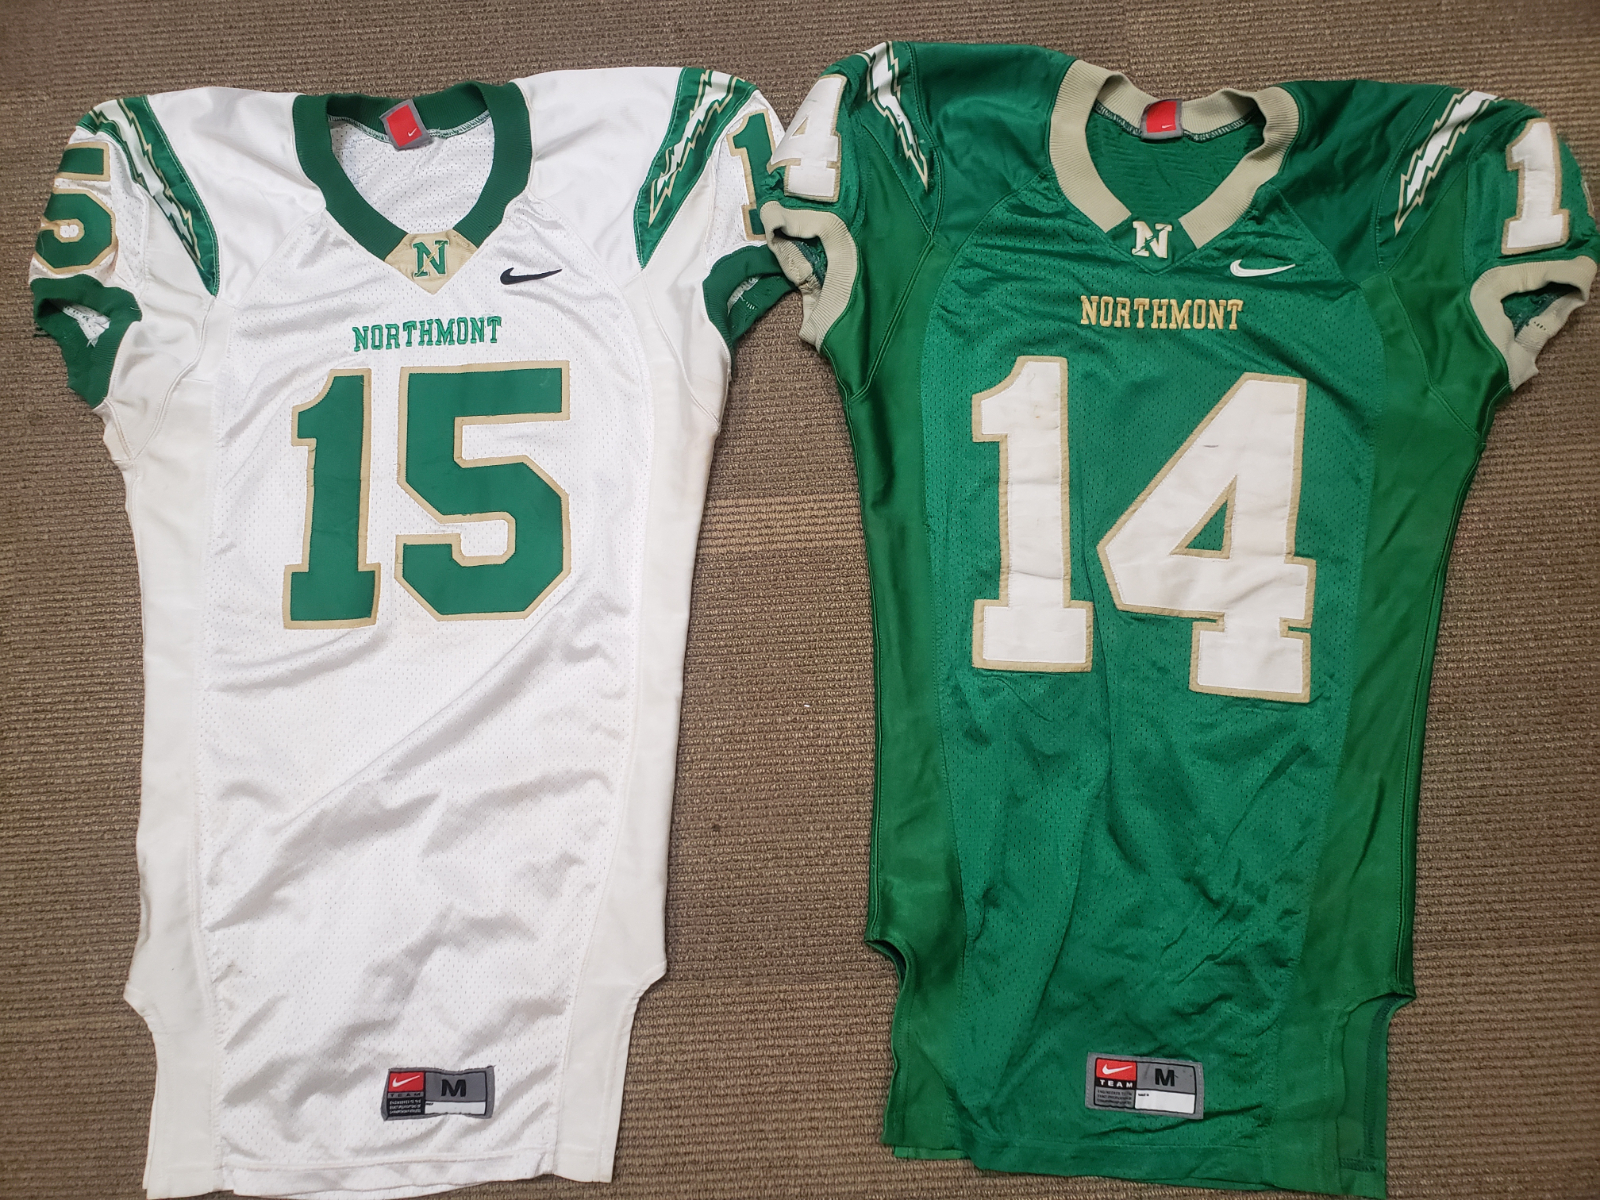 Varsity Football Uniforms for Sale